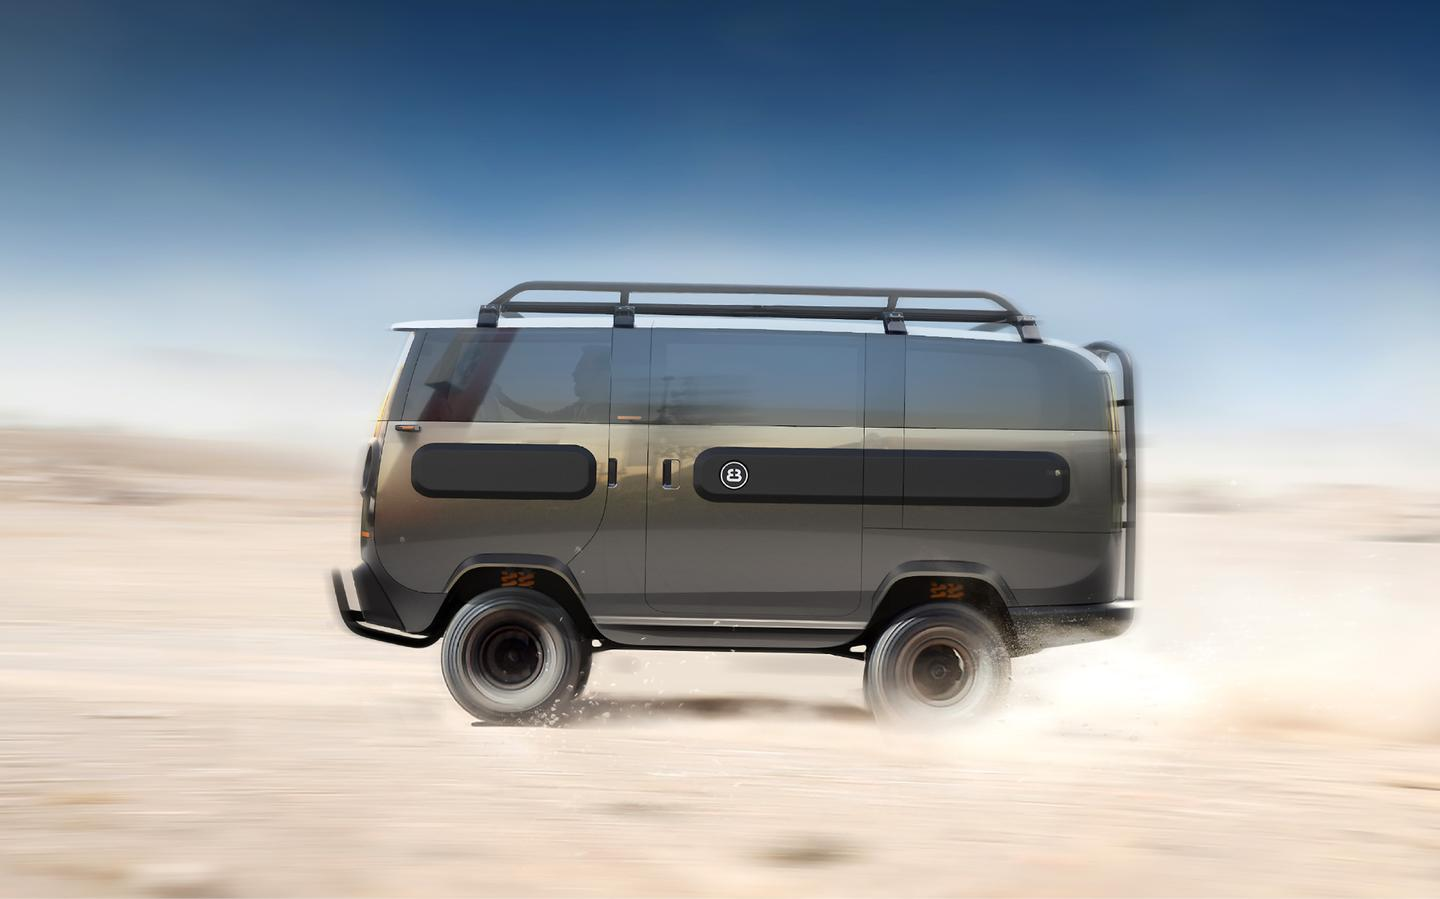 Assuming it comes to fruition, the eBussy could be an ultra-versatile electric vehicle for work, leisure and everyday driving